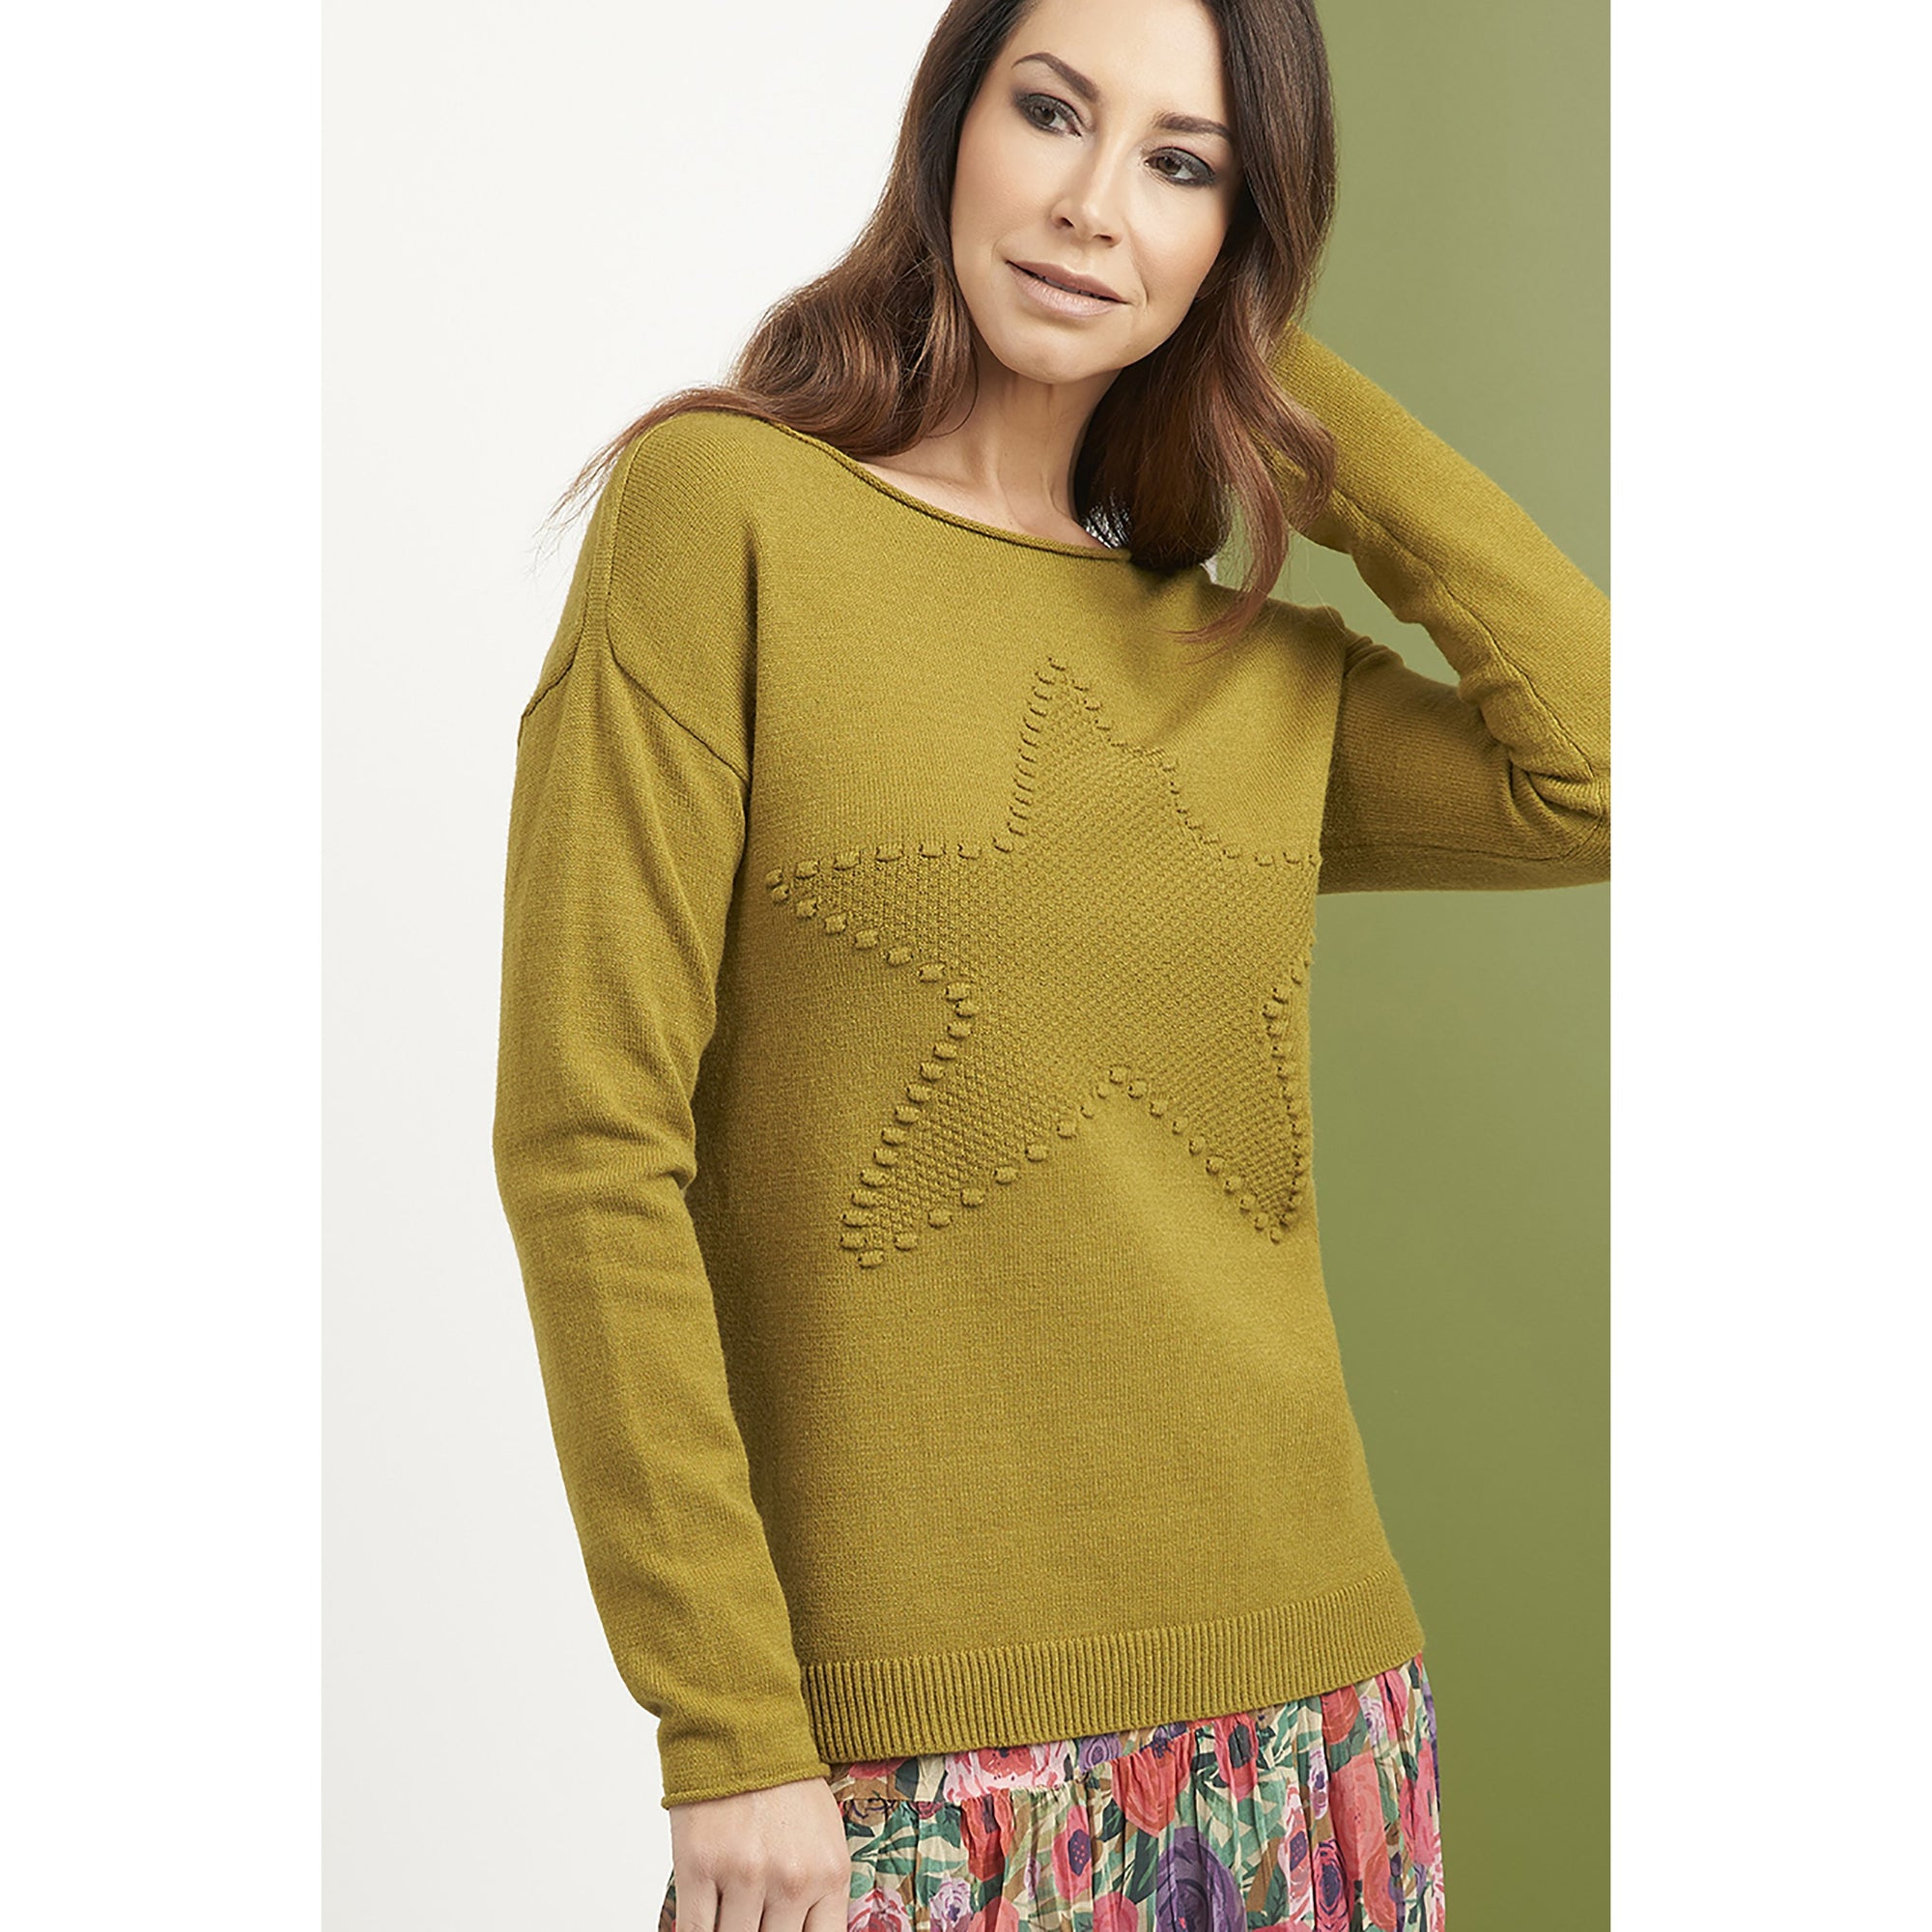 Foil Star Performance Sweater in Grassy